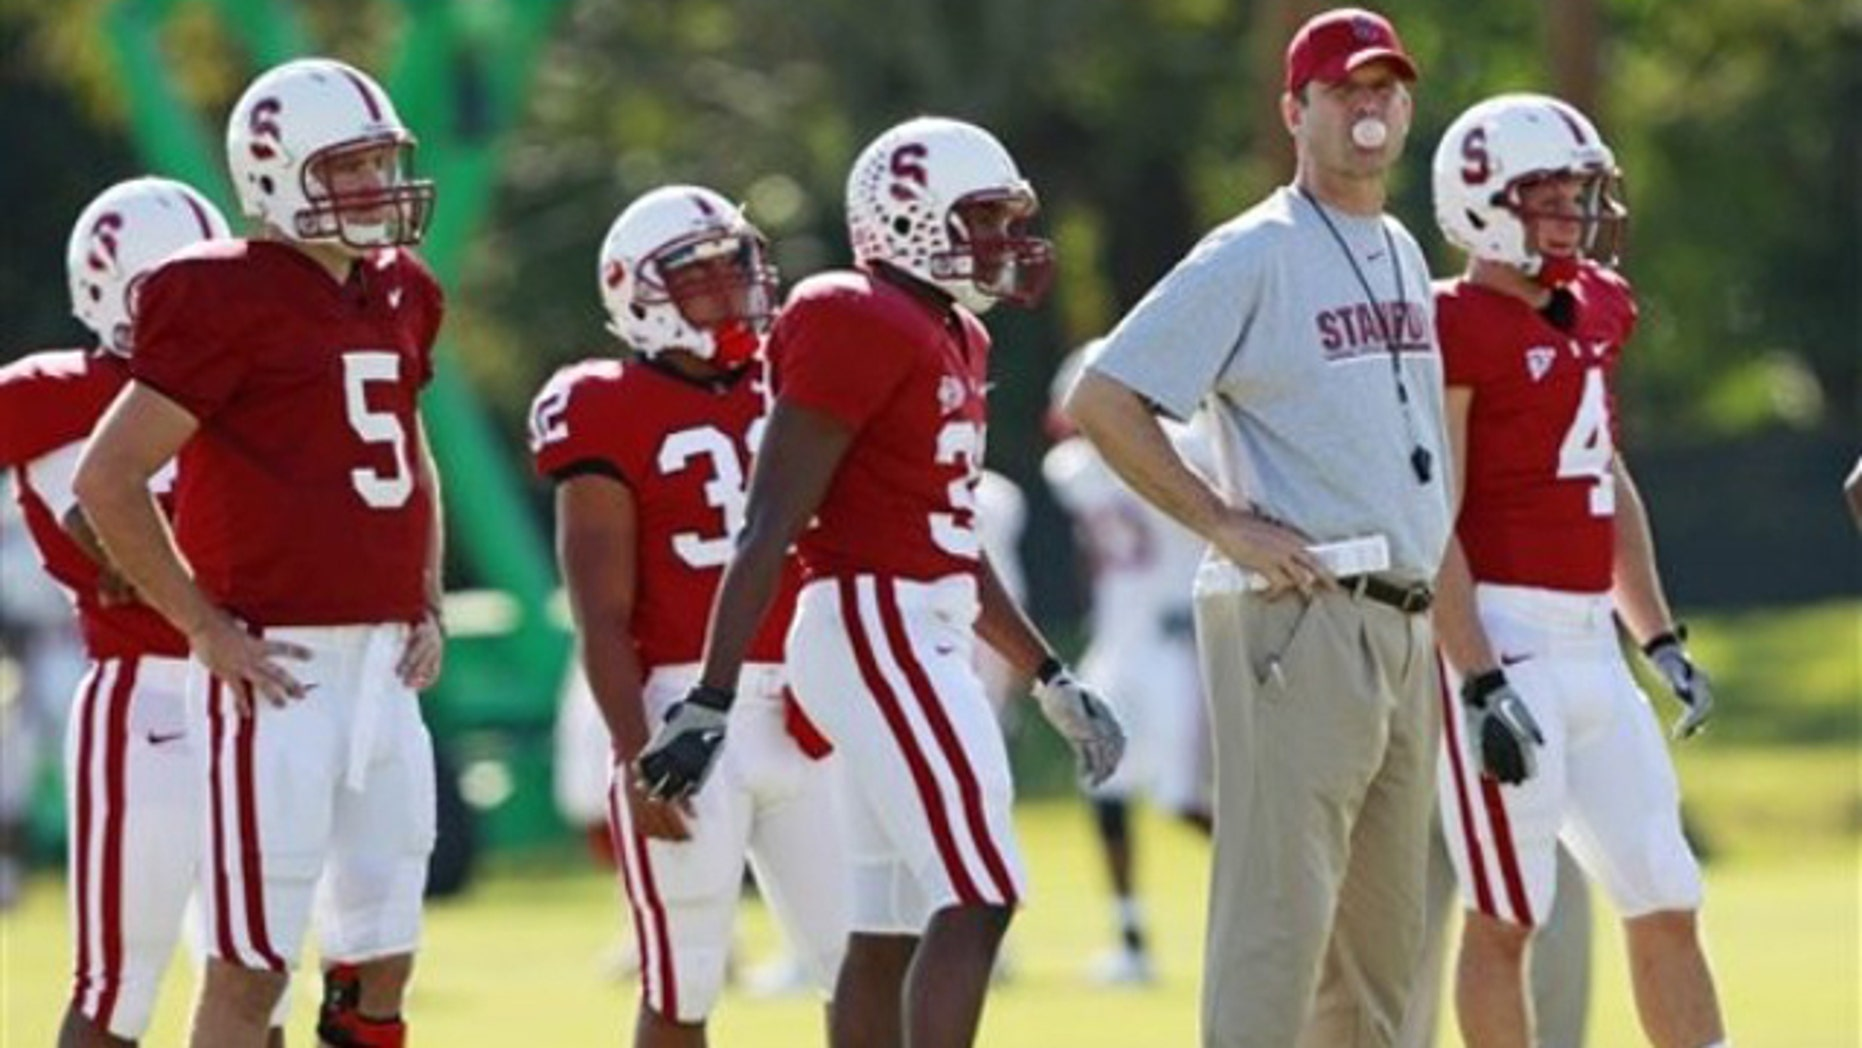 Stanford head coach Jim Harbaugh, second from right, blows a bubble as he watches his team practice at Barry University in Miami Shores, Fla., Wednesday, Dec. 29, 2010.